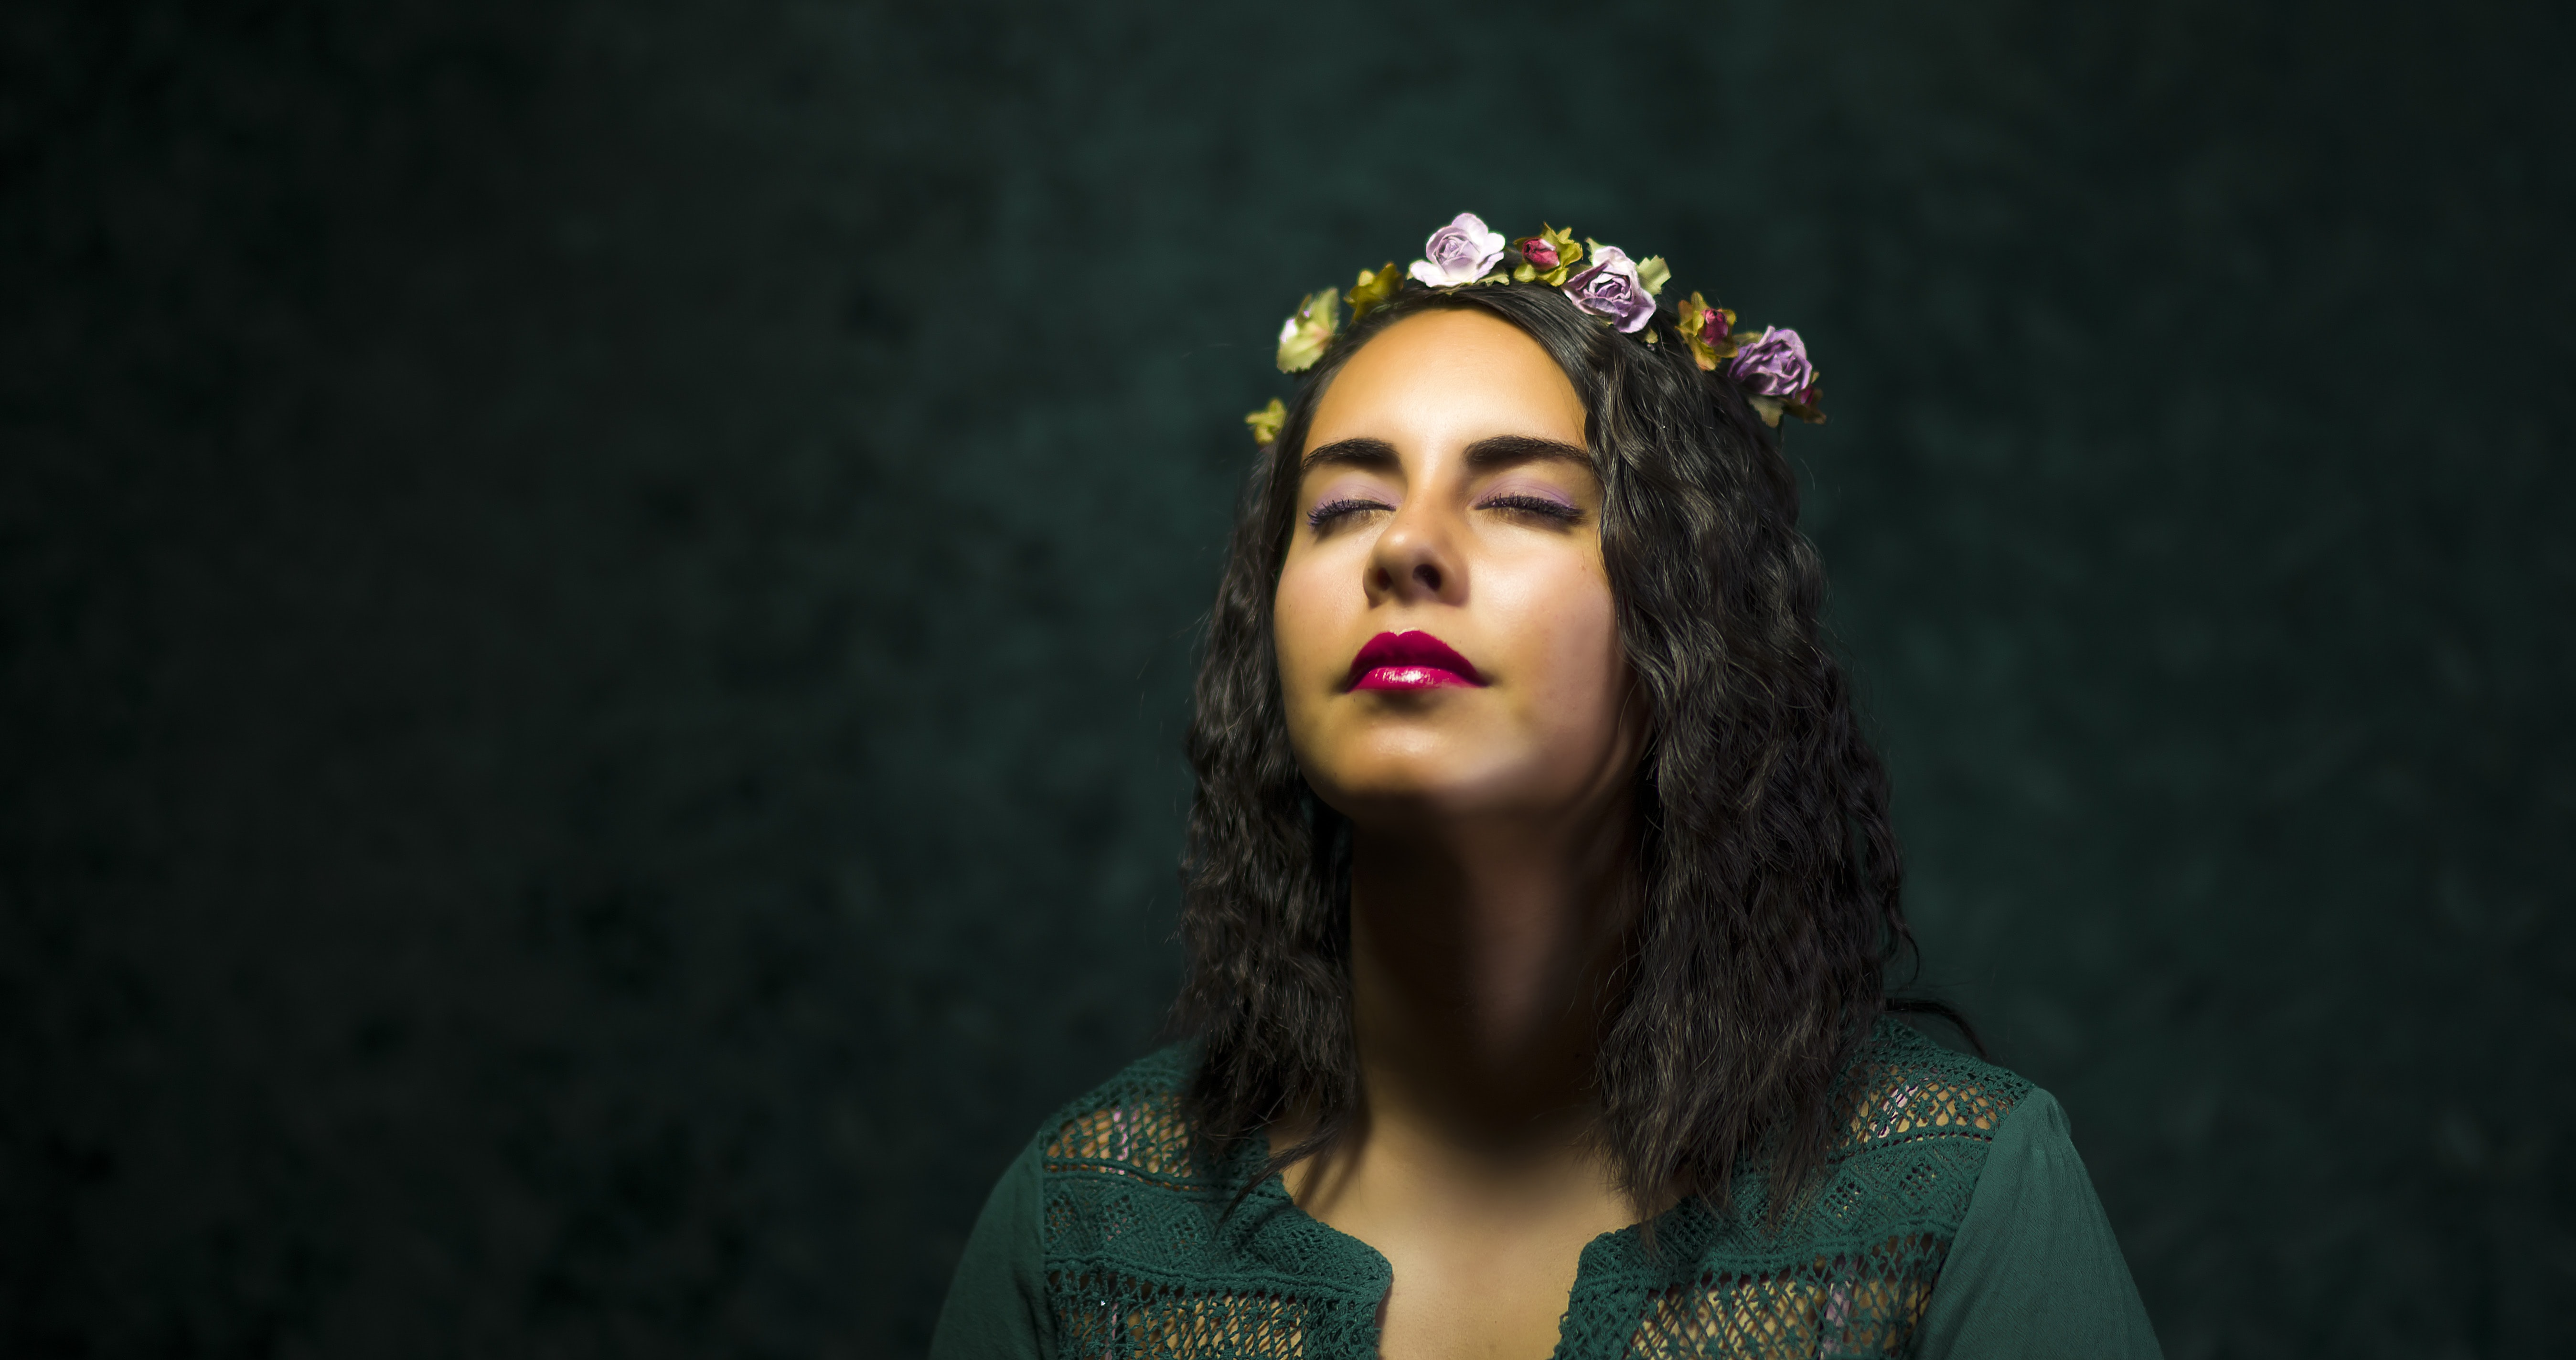 A dark-haired woman in a crown of flowers